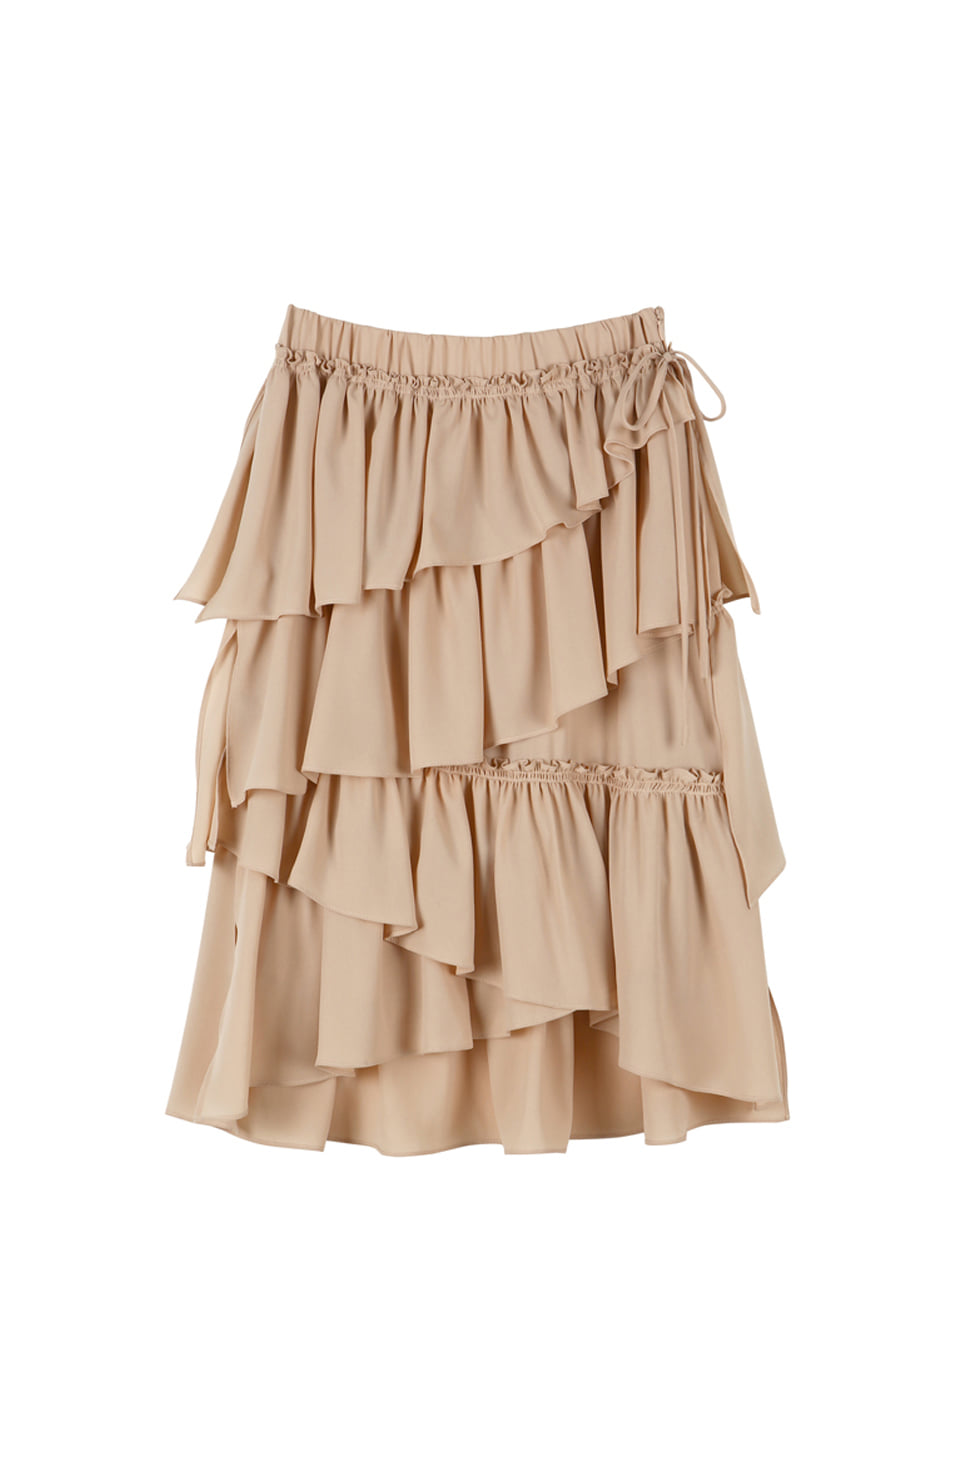 CAN CAN SKIRT - BEIGE